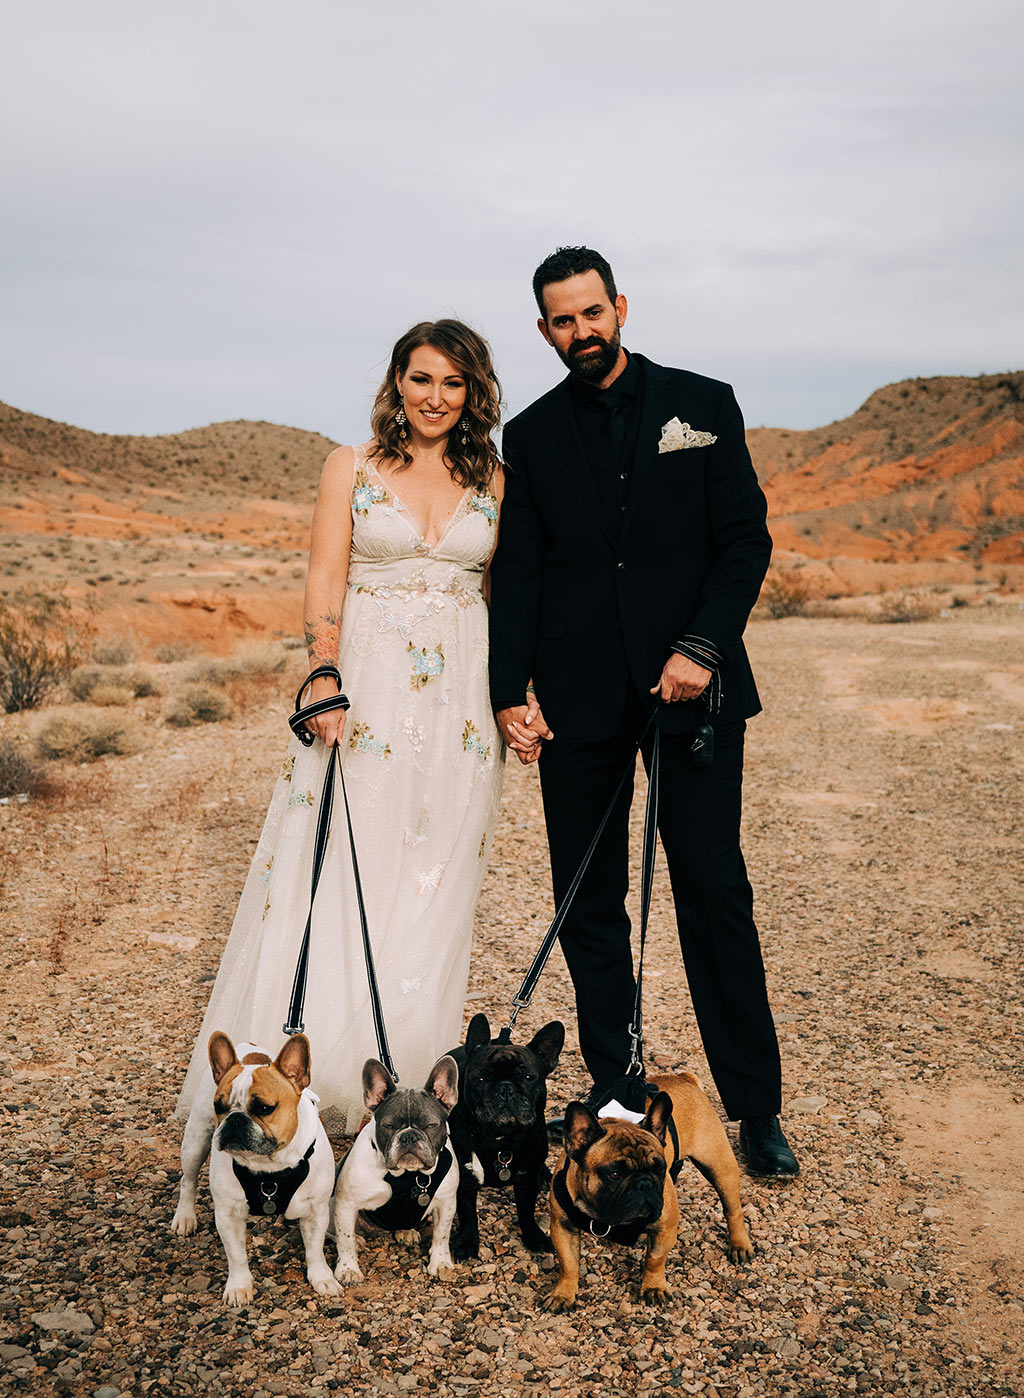 Bride and Groom with dogs in Desert wedding setting